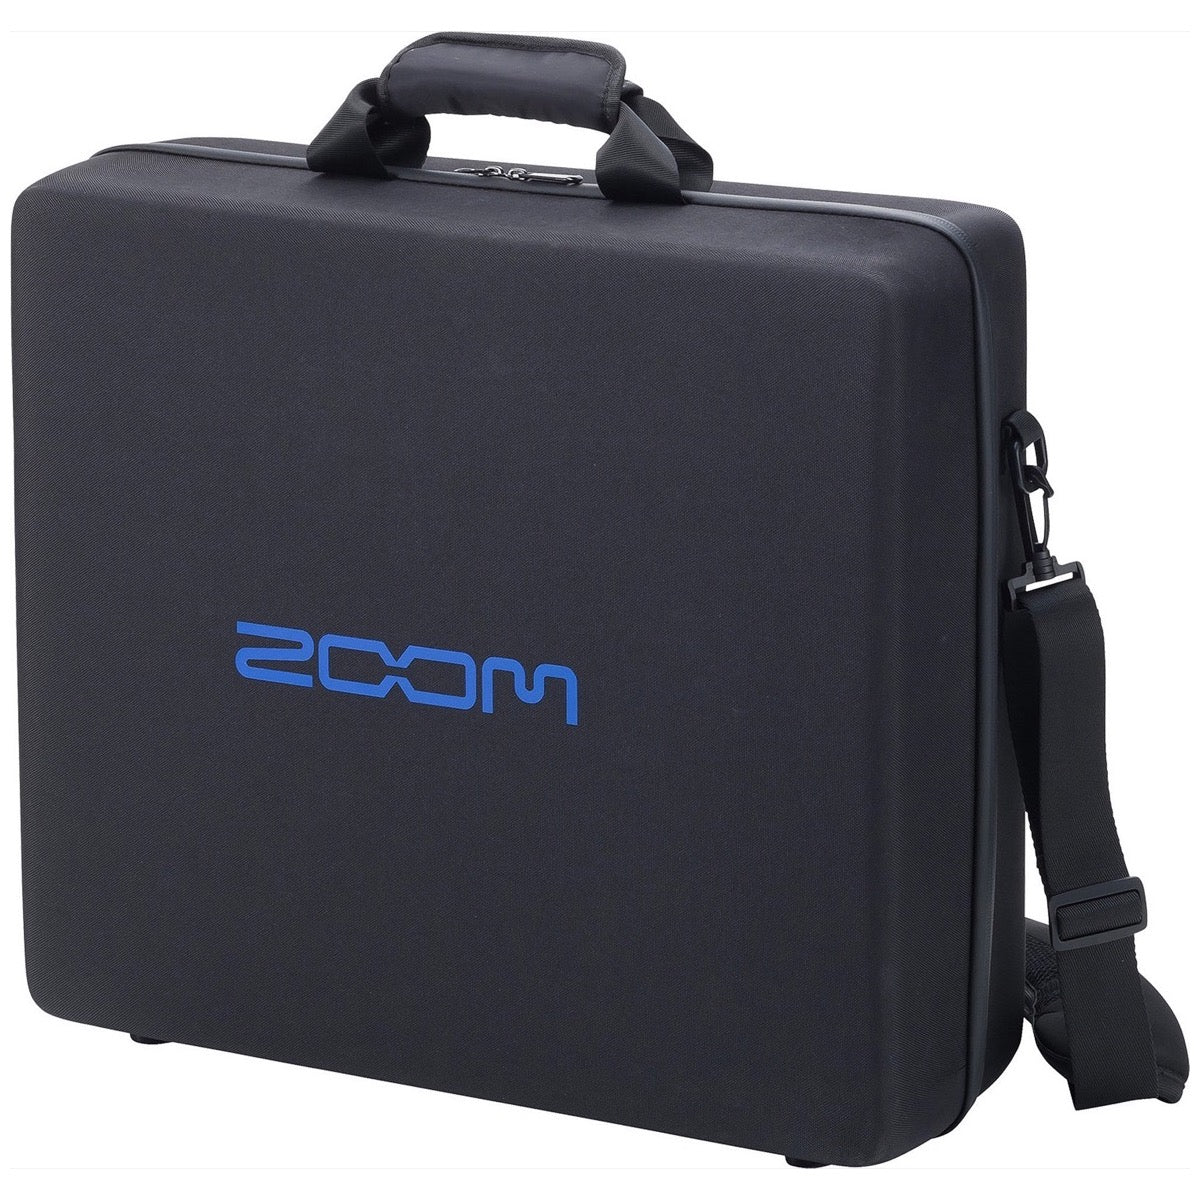 Zoom CBL-20 Carrying Bag for L-12 and L-20